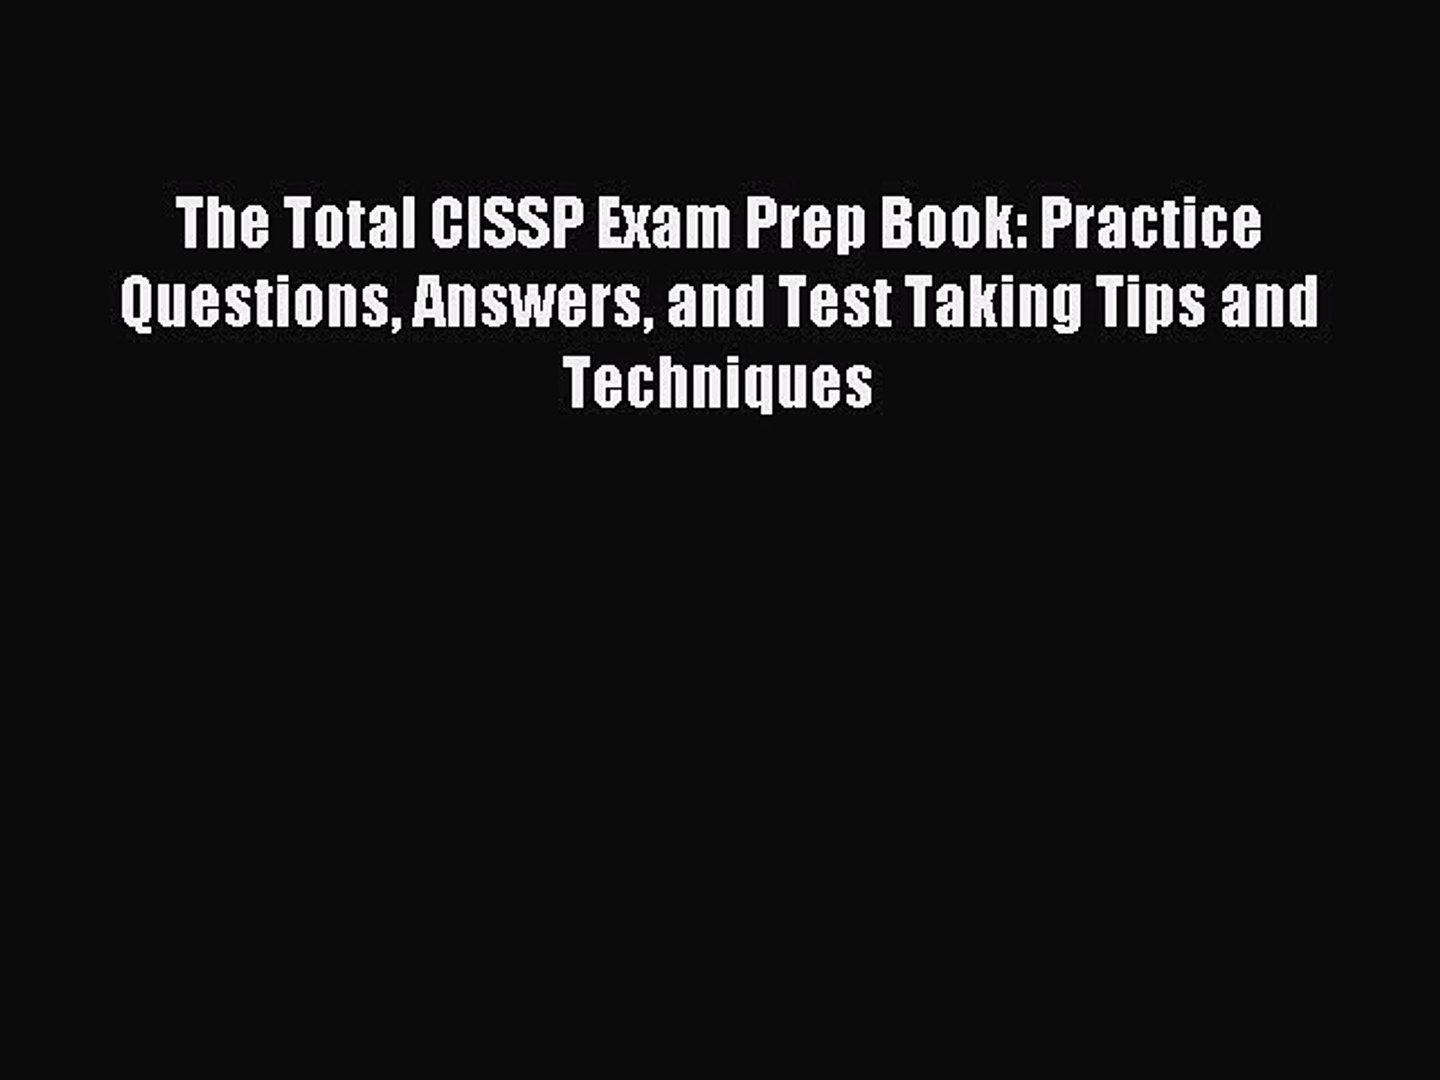 Read The Total CISSP Exam Prep Book: Practice Questions Answers and Test Taking Tips and Techniques